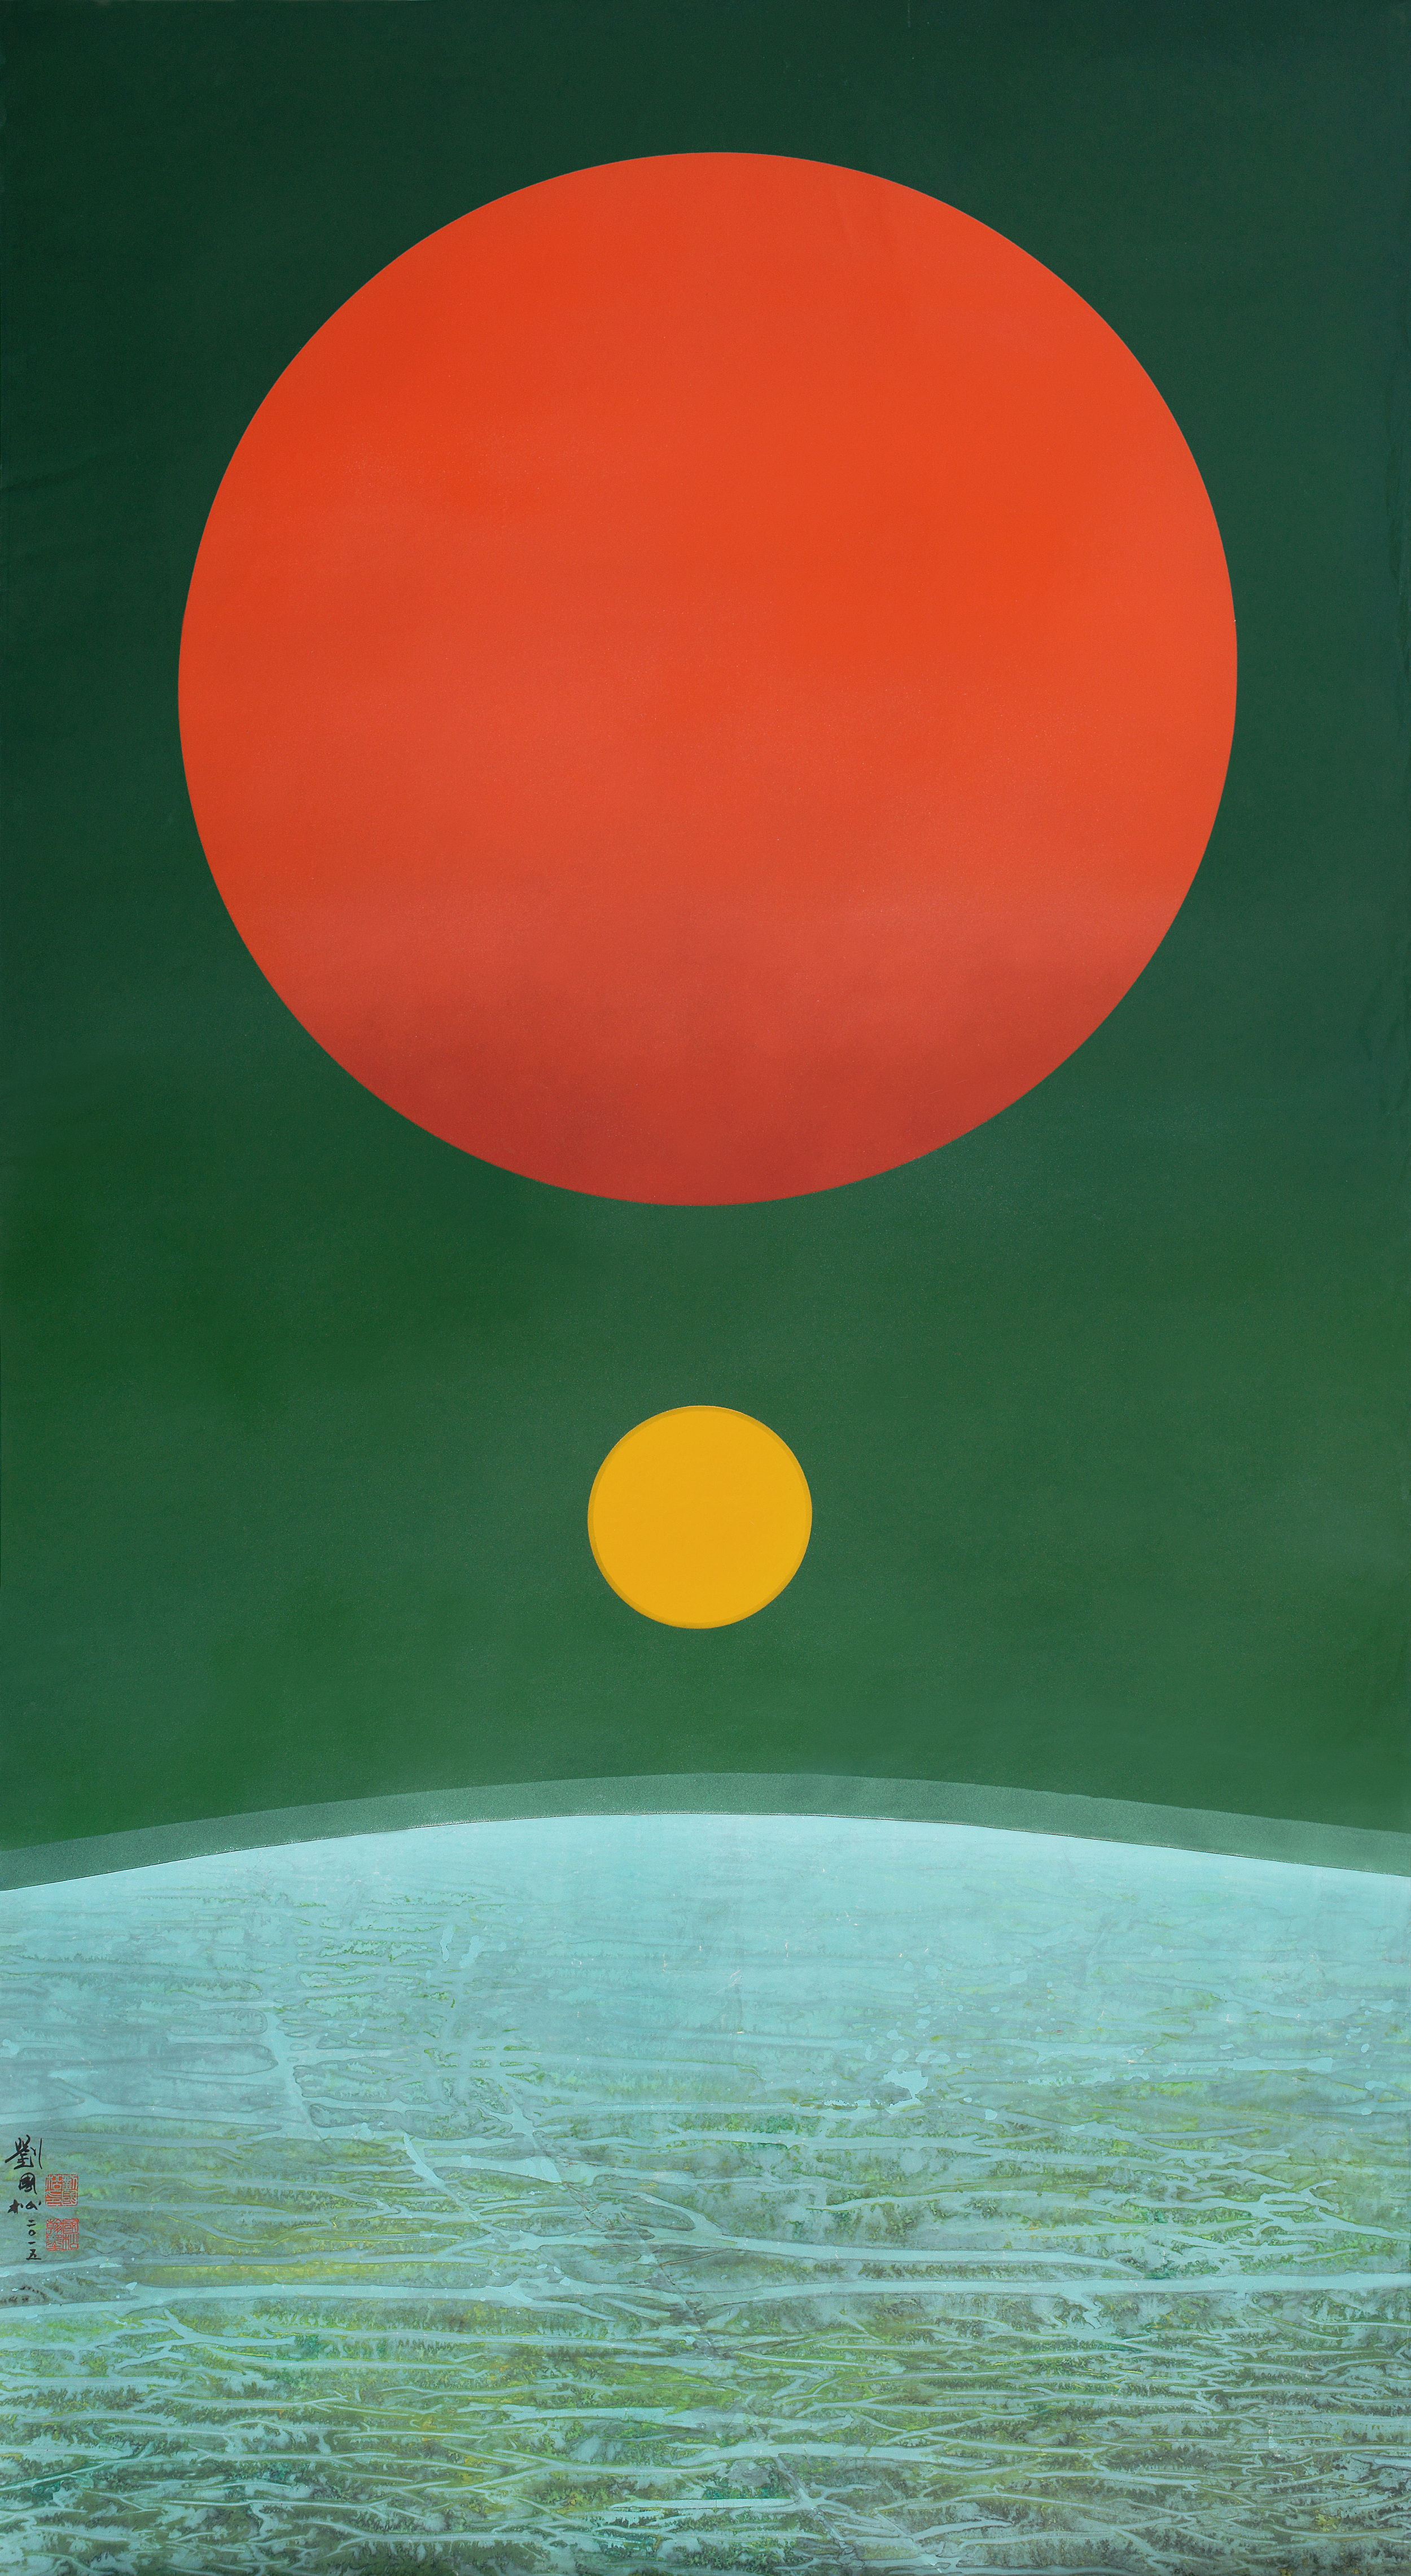 (Liu Kuo-sung, 'Symphony of Sun and Moon', 2015, Courtesy of Galerie du Monde)